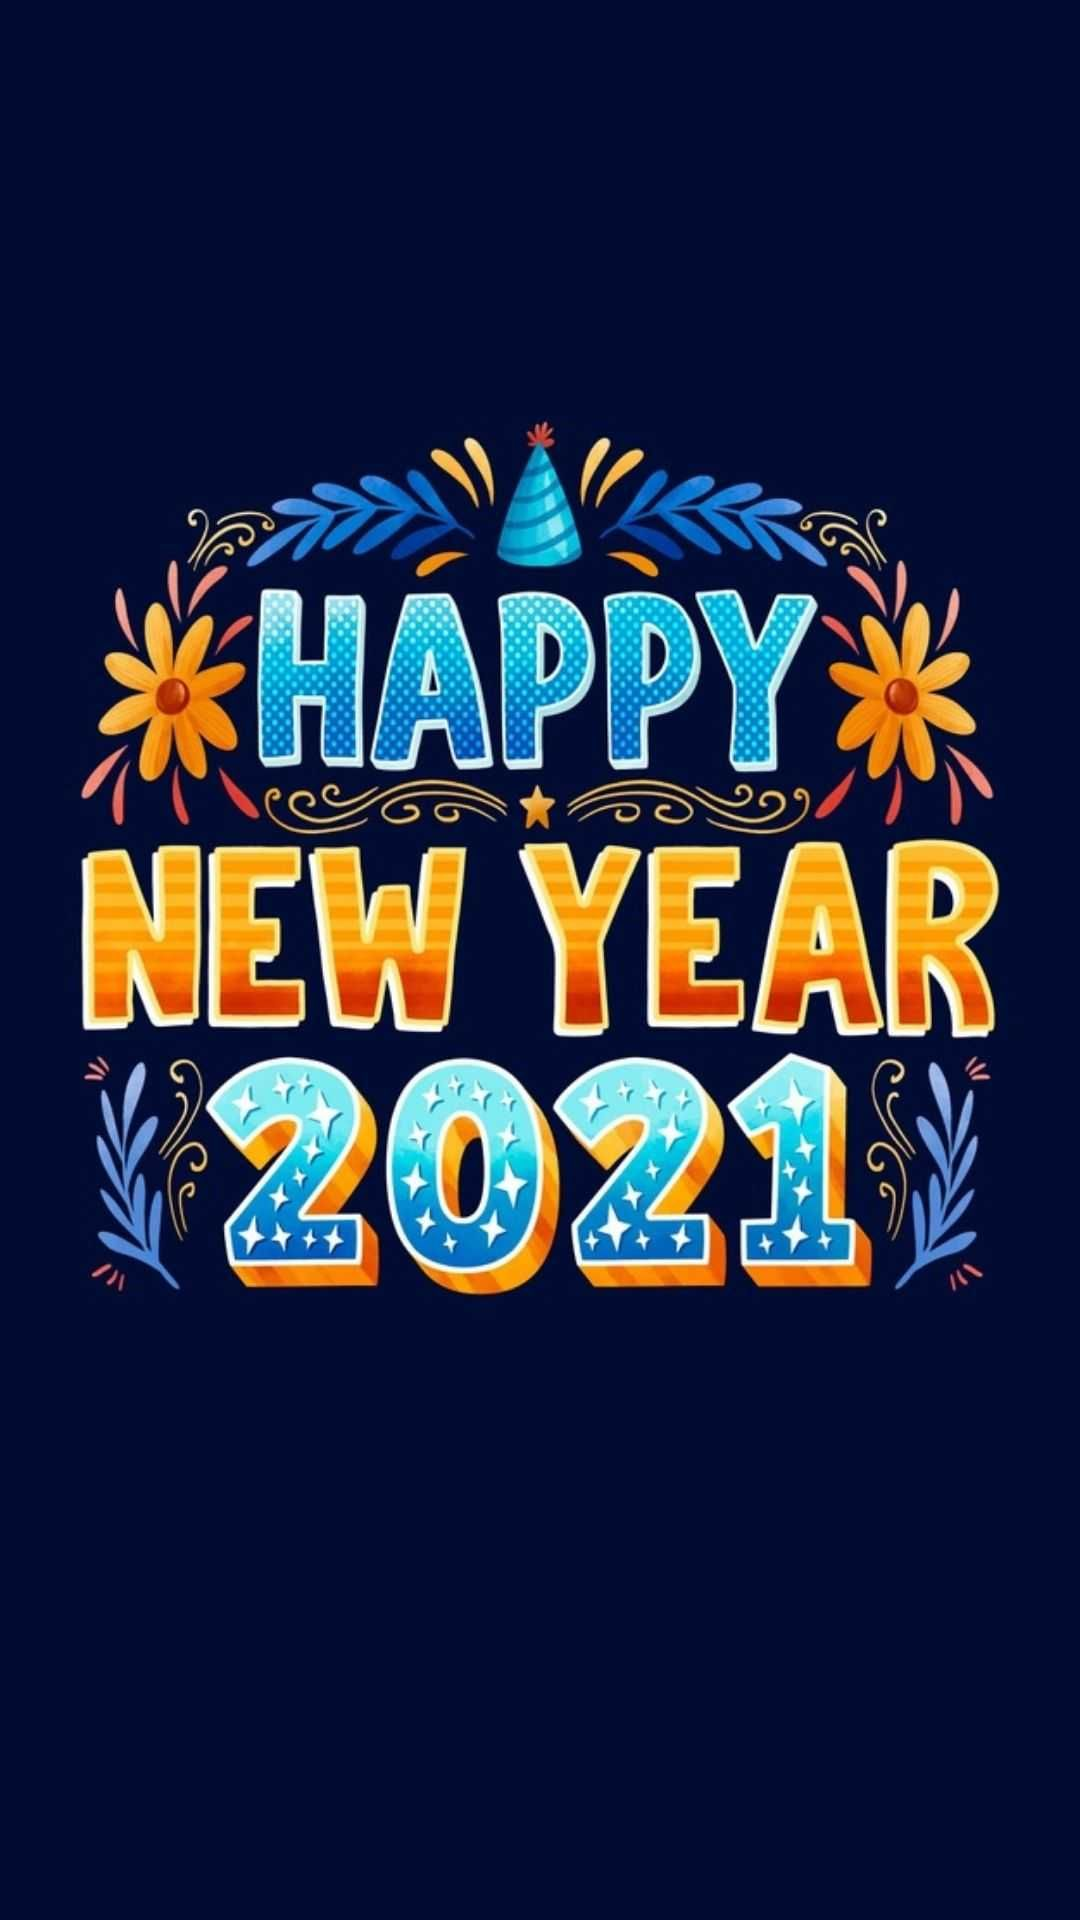 Wallpapers For Friends New Year Free Hd Download Iphone Android Backgrounds Happy New Year Pictures Happy New Year Images Happy New Year Wallpaper